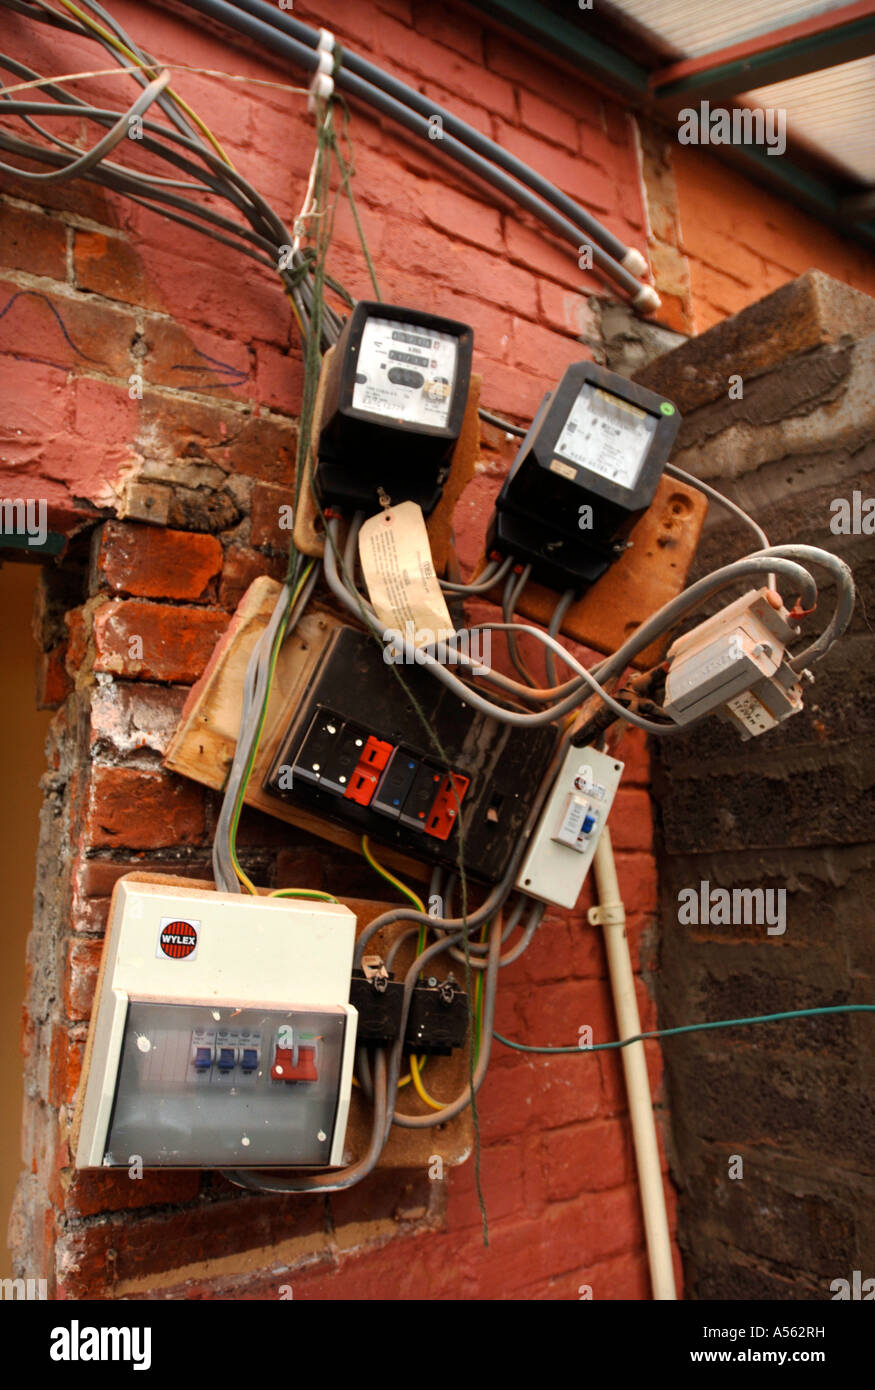 Mains Wire Wiring Rewire Metering Build Building Electric Stock ...